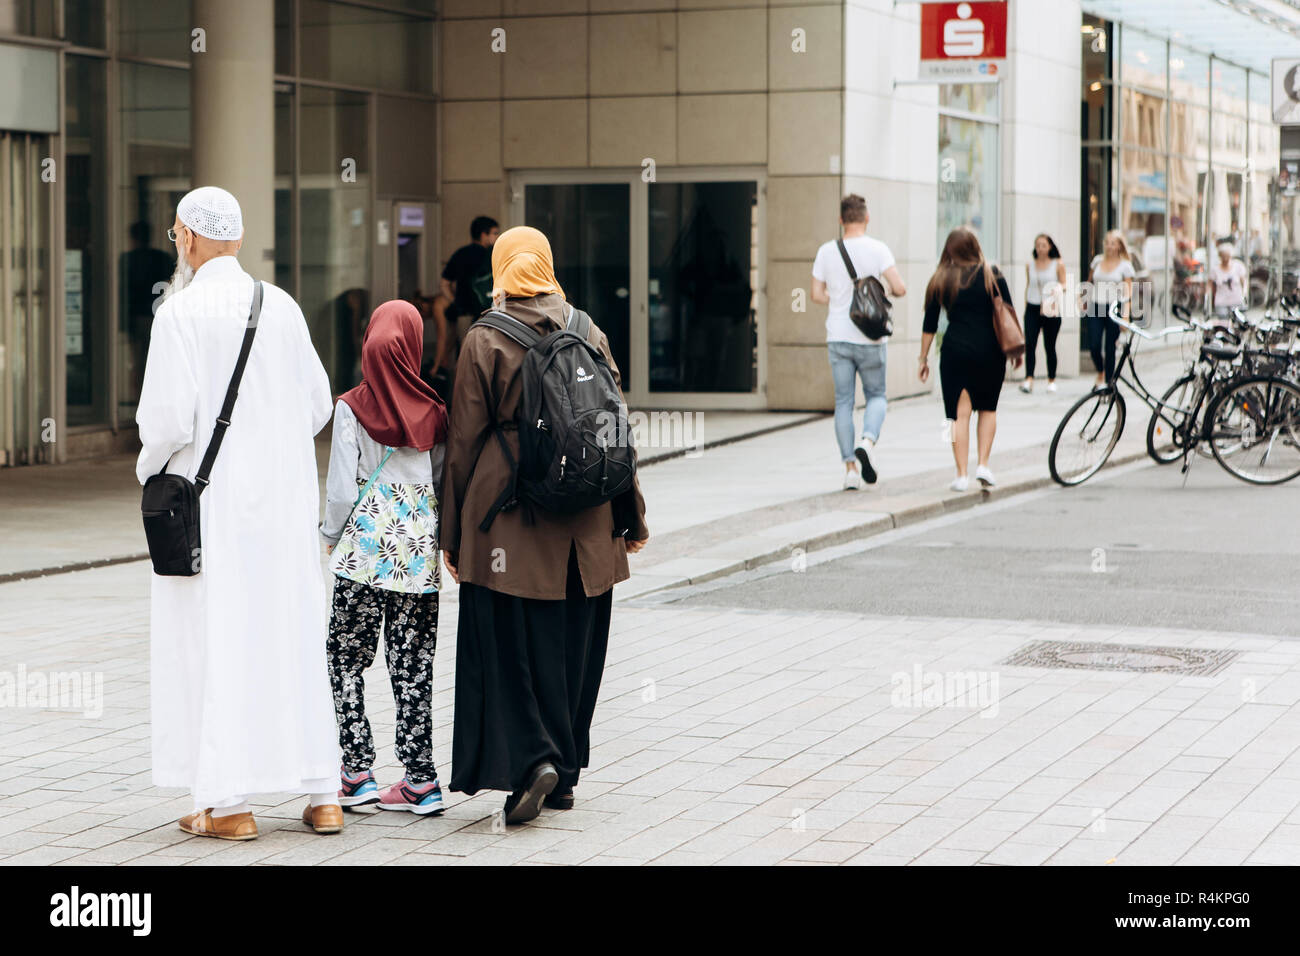 Germany, Leipzig, September 6, 2018: Friendly Arab family of tourists or migrants walking along the street of Leipzig in Germany on a summer sunny day. - Stock Image